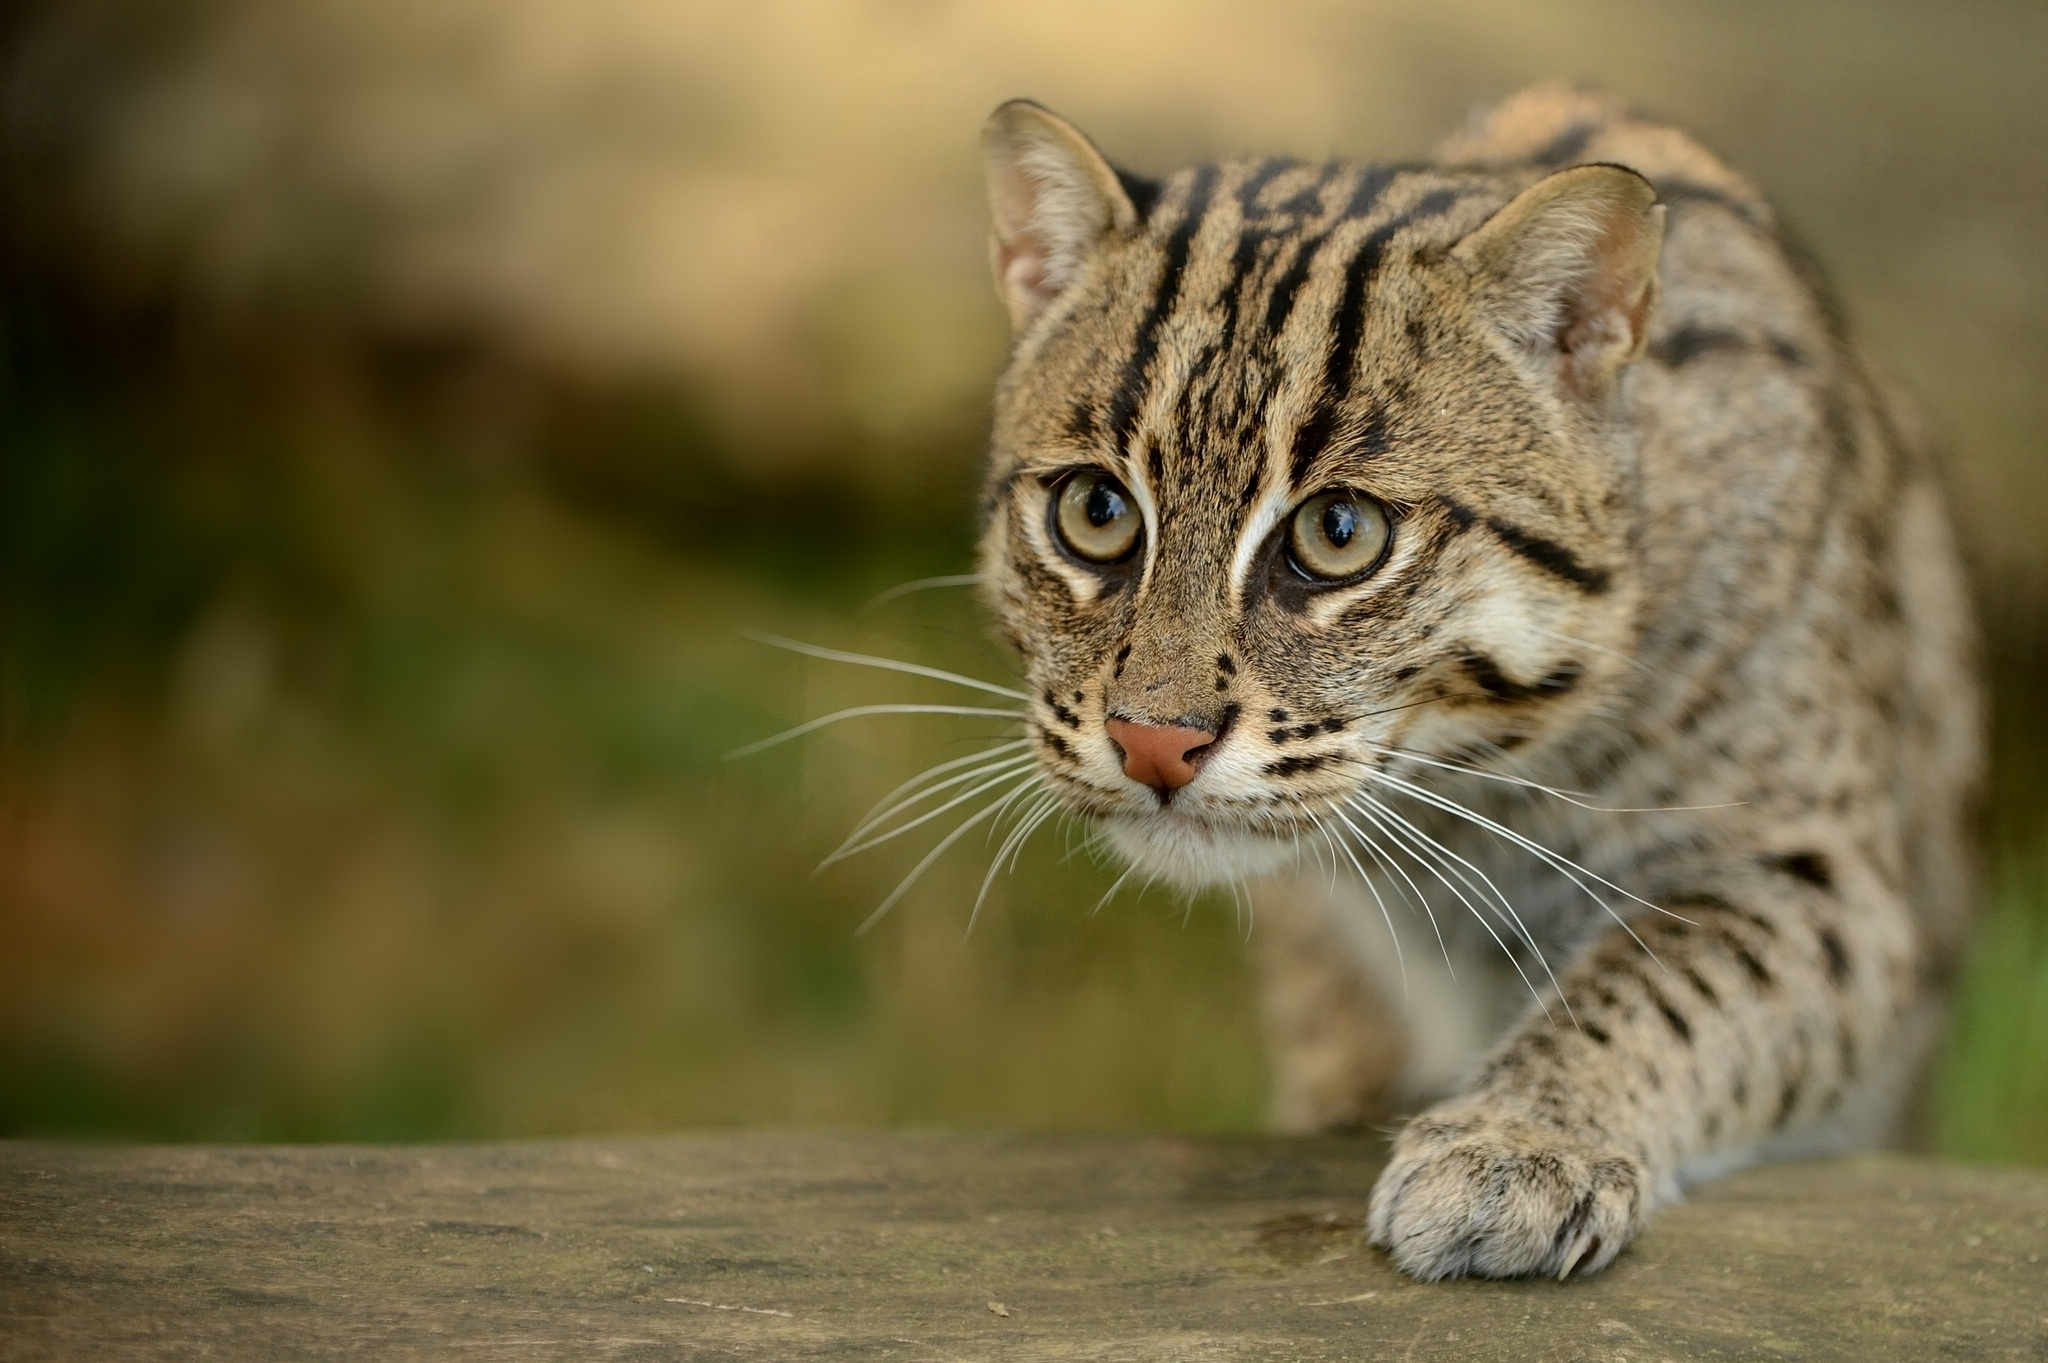 71795 download wallpaper Animals, Fishing Cat, Fish Cat, Wild Cat, Wildcat, Paw, Muzzle screensavers and pictures for free